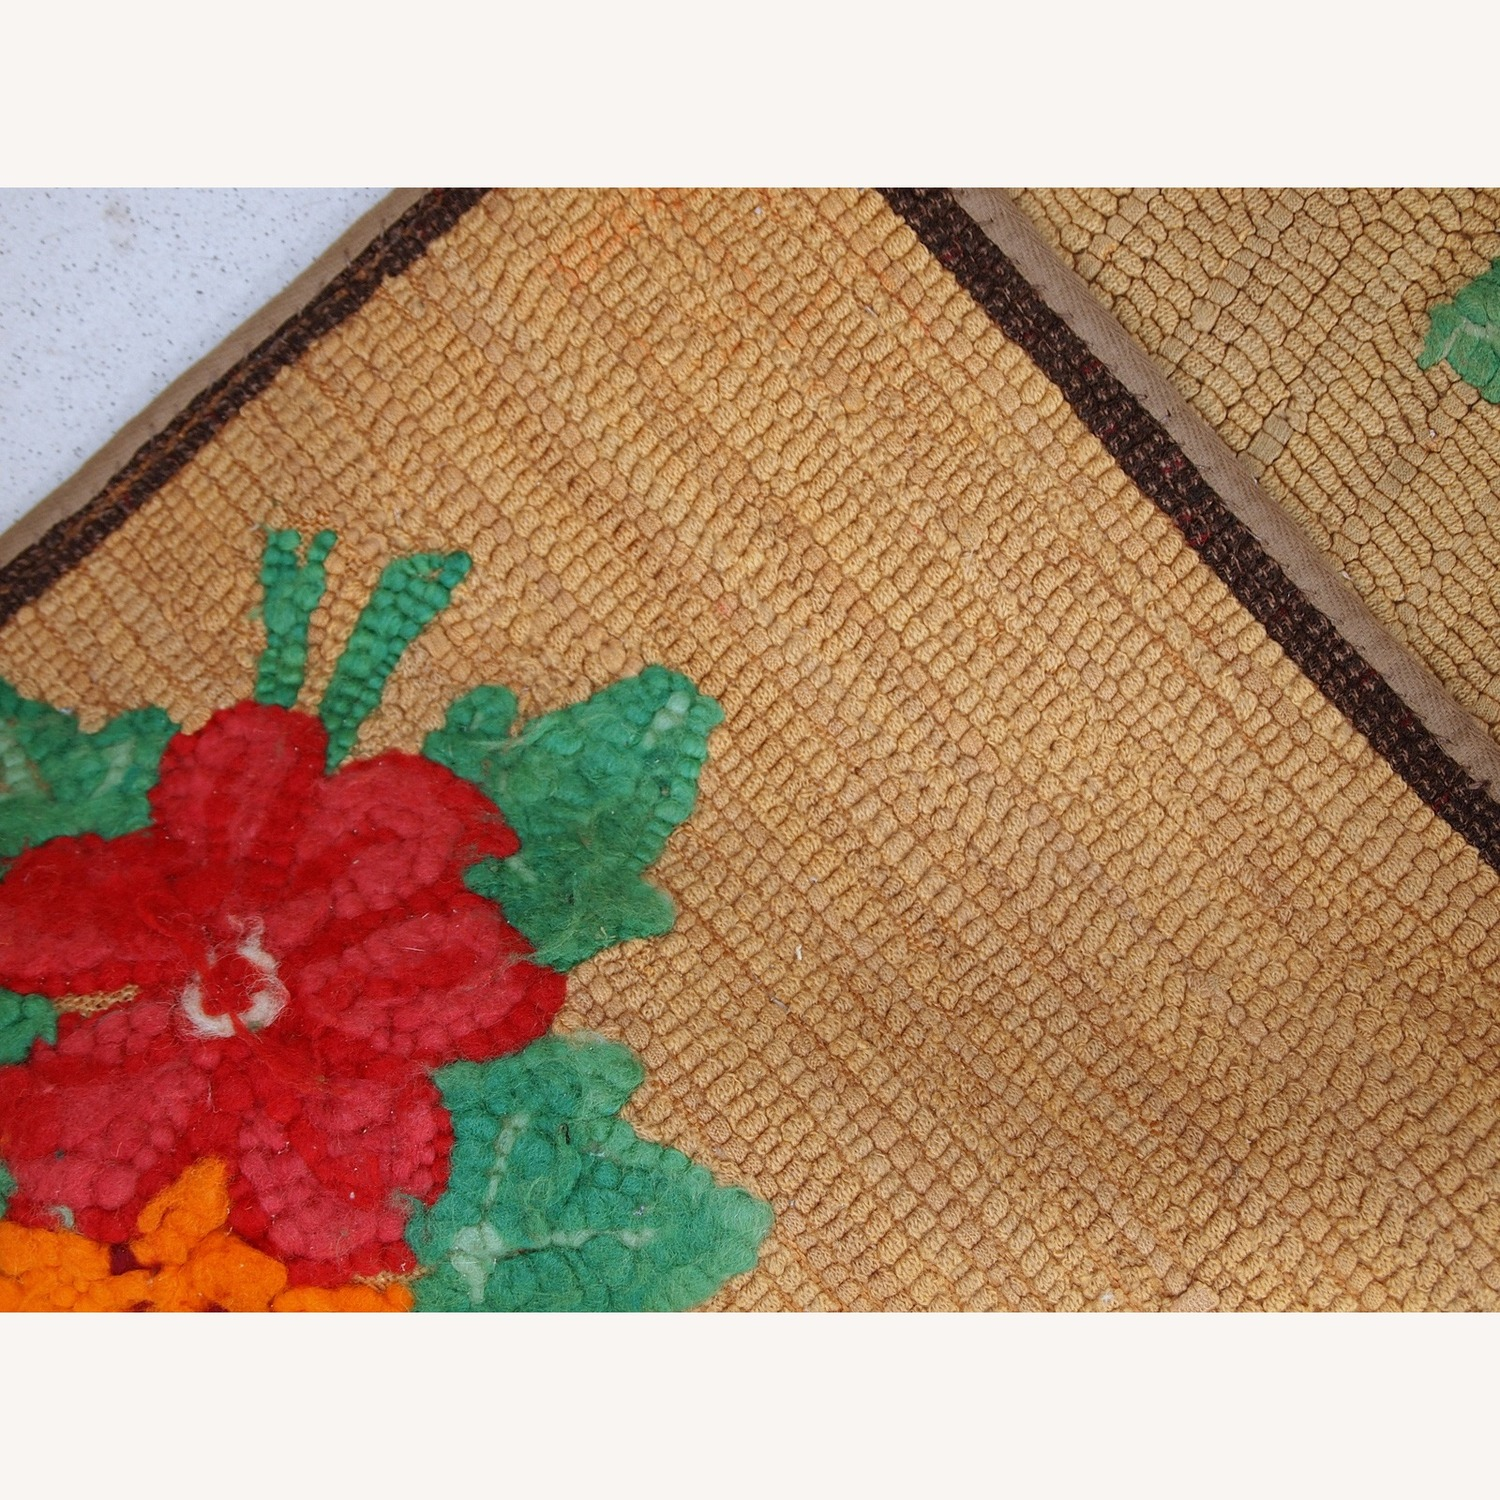 Handmade Antique American Hooked Rug - image-3